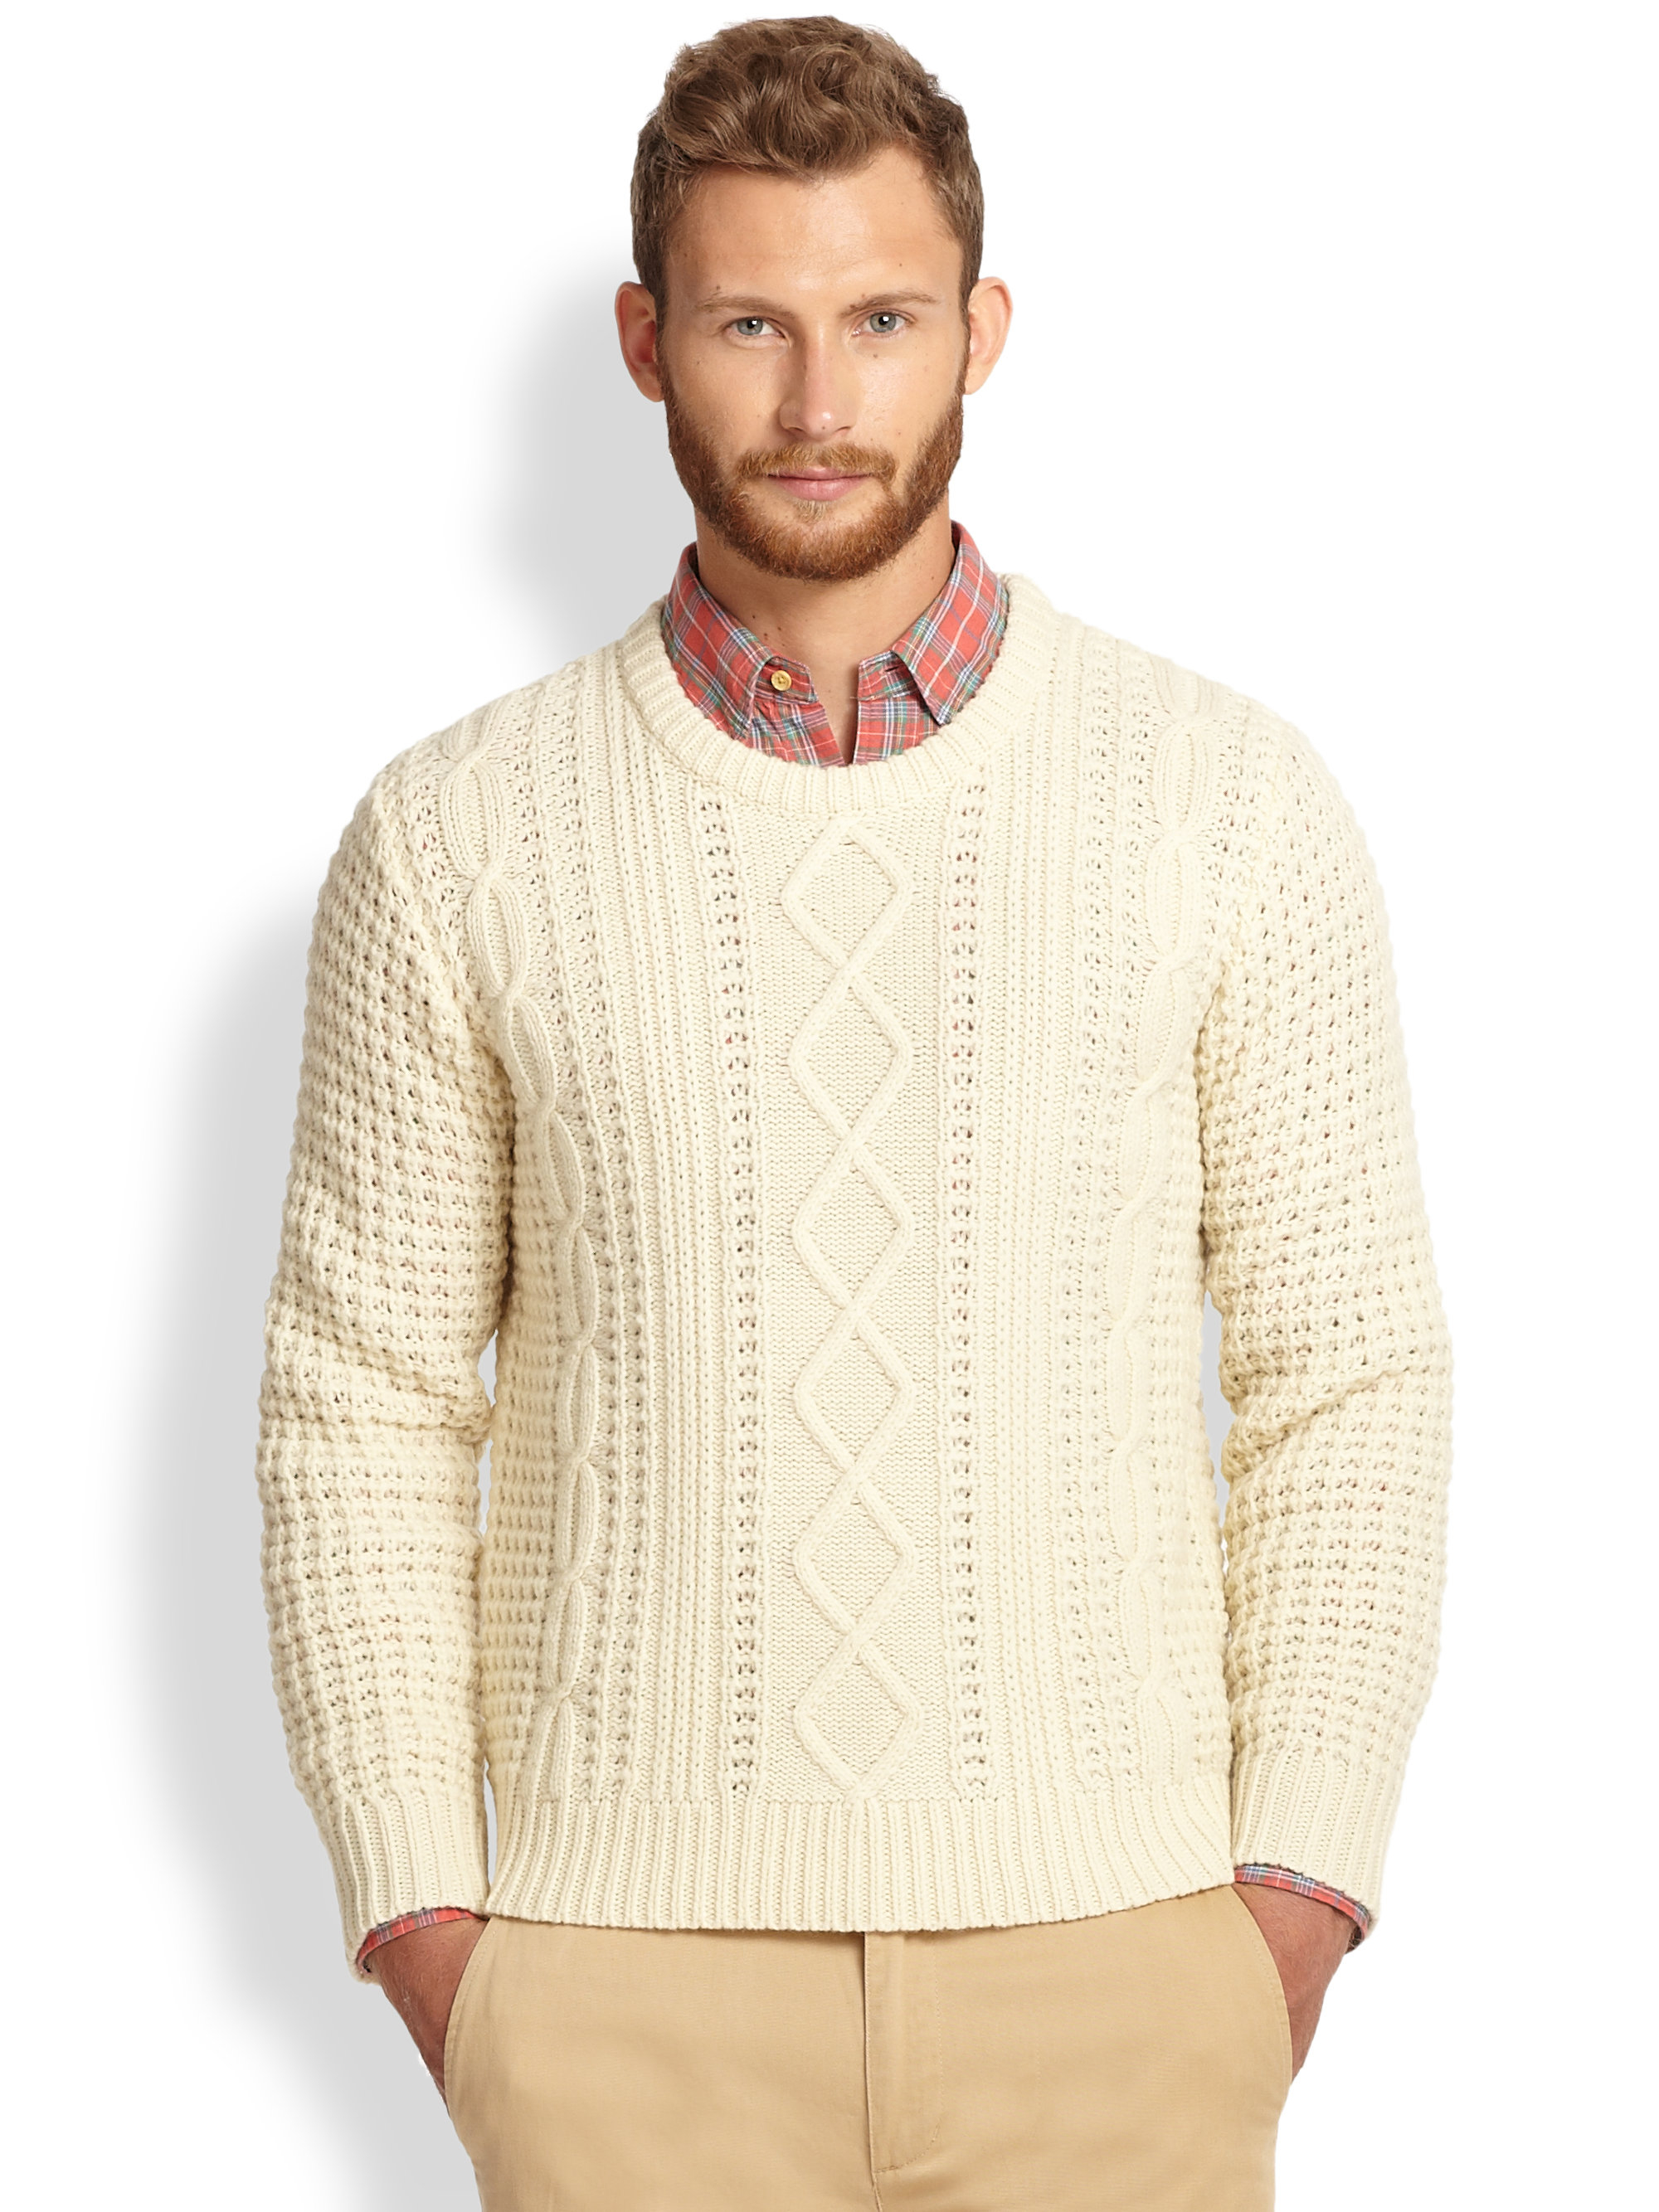 Gant Rugger Lambswool Cable Knit Sweater In Natural For